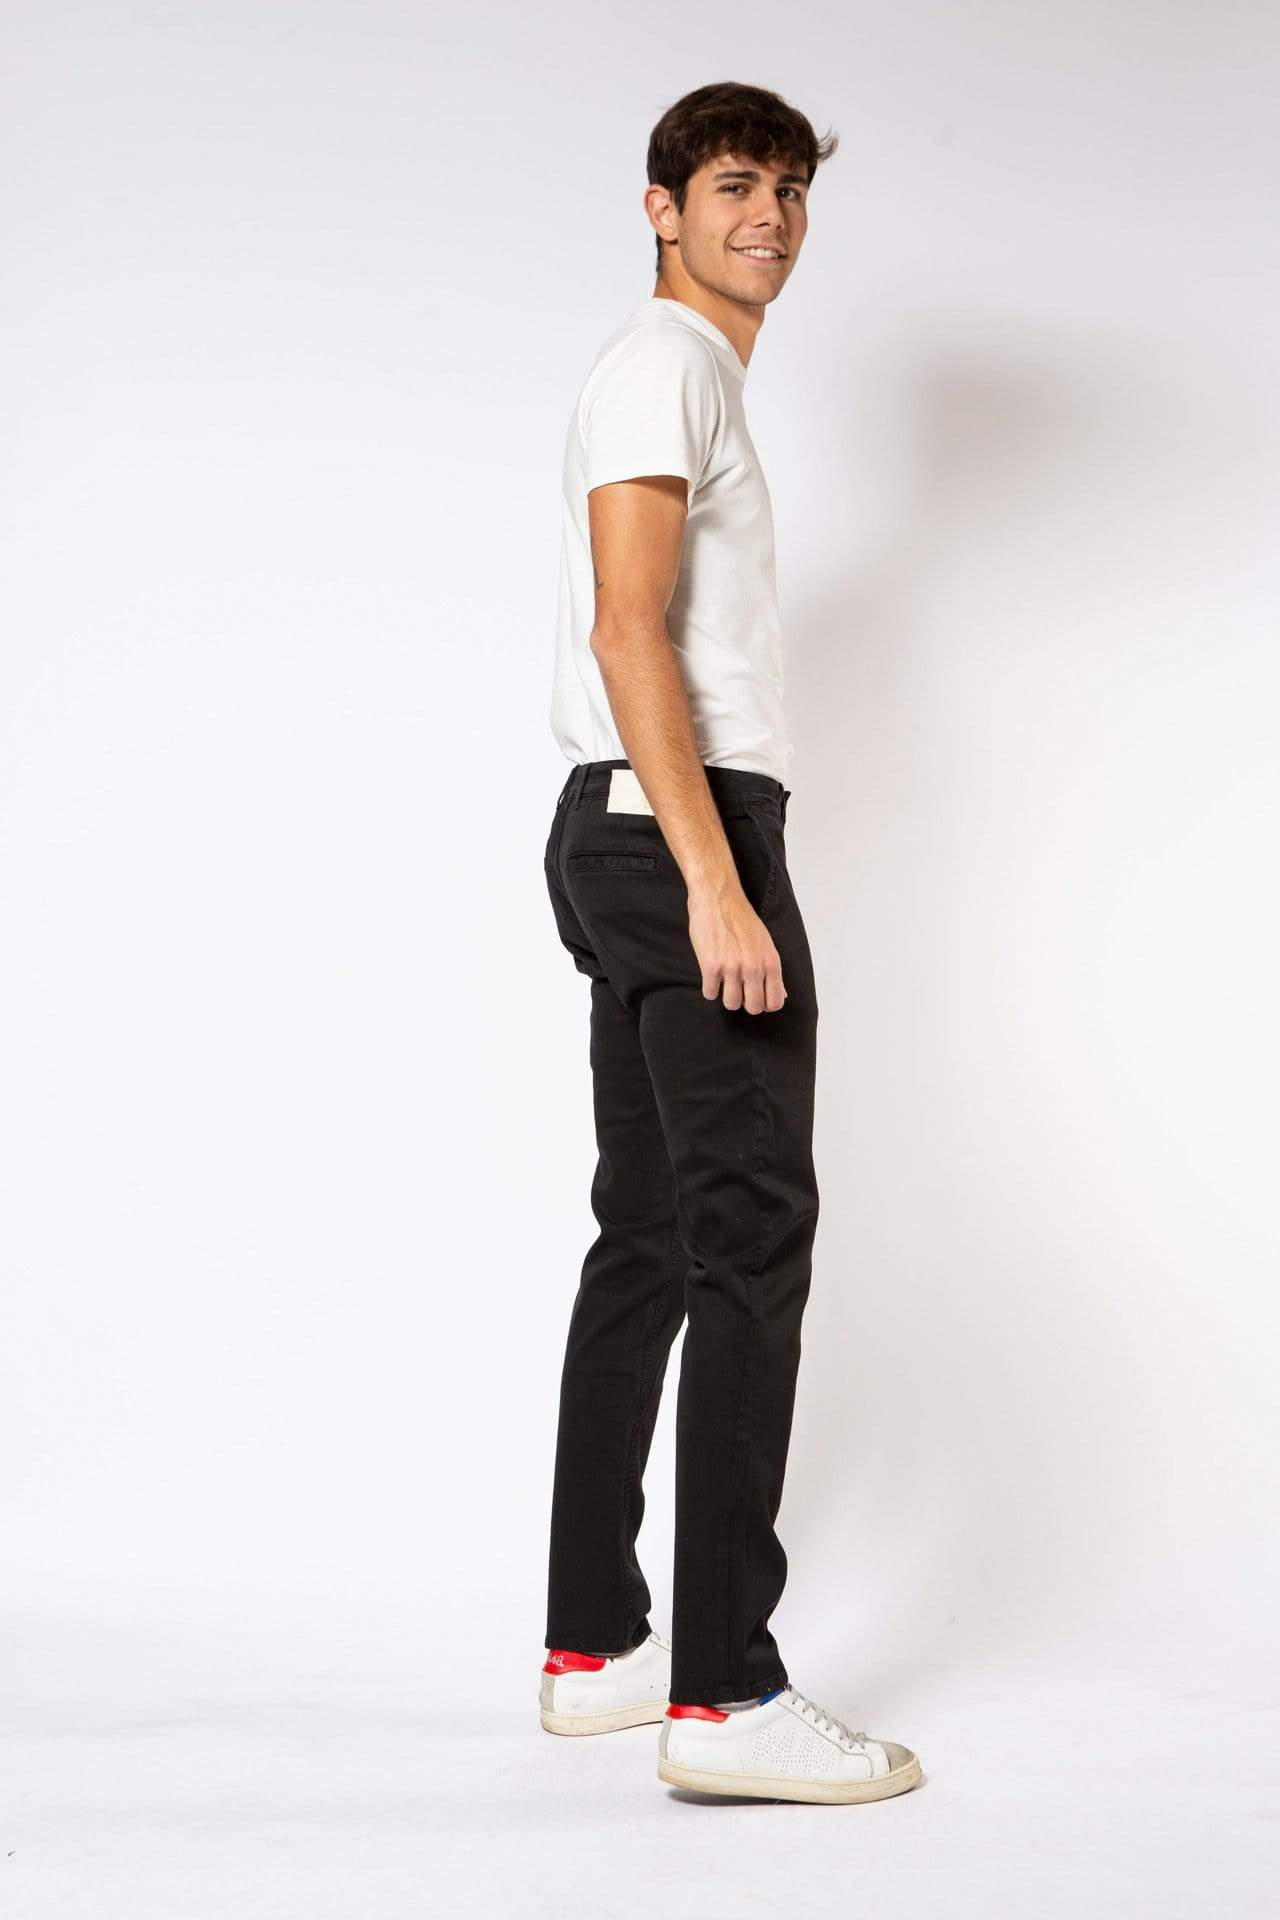 Par.co Denim pant Salice Chino in Organic Cotton. sustainable fashion ethical fashion